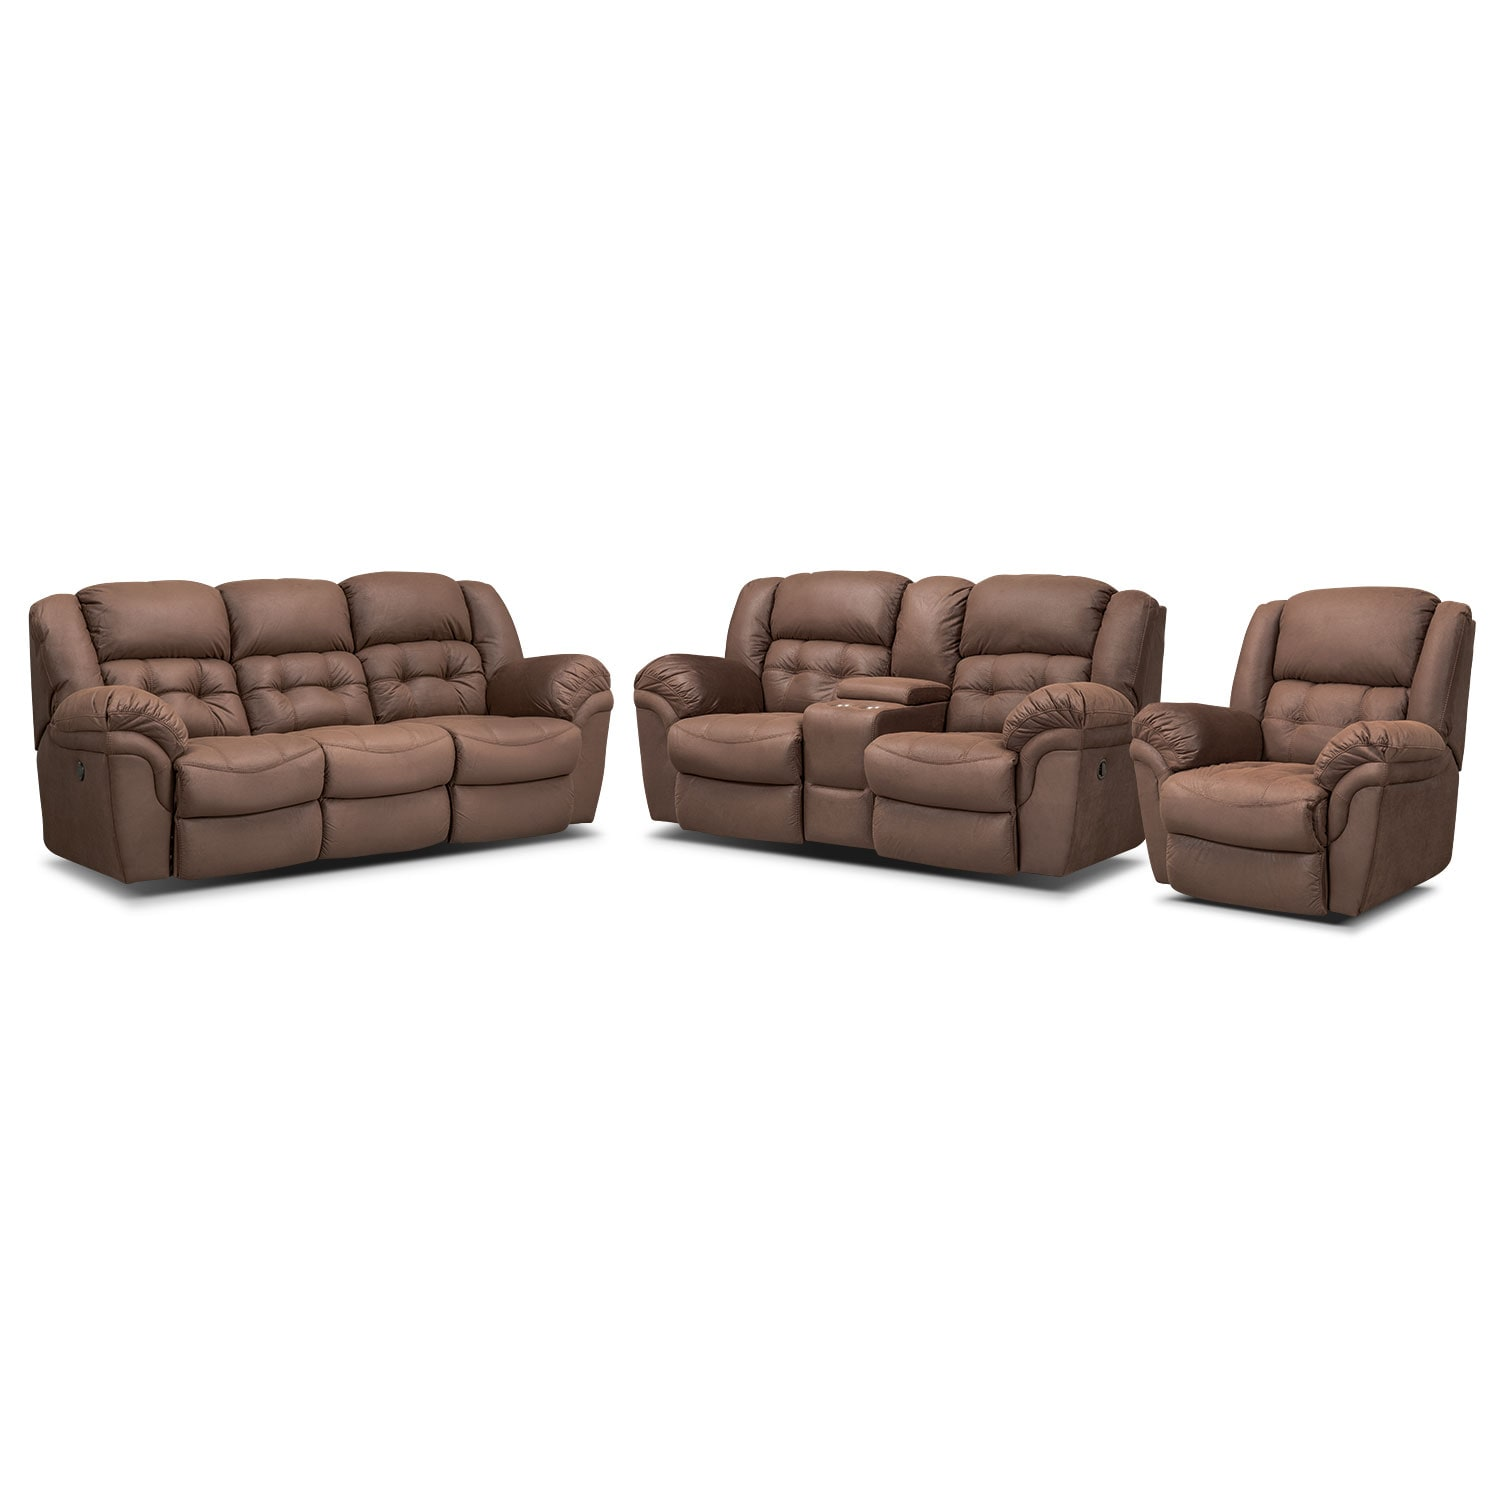 Living Room Furniture - Lancer Chocolate Power Reclining Sofa, Reclining Loveseat w/ Console and Glider Recliner Set